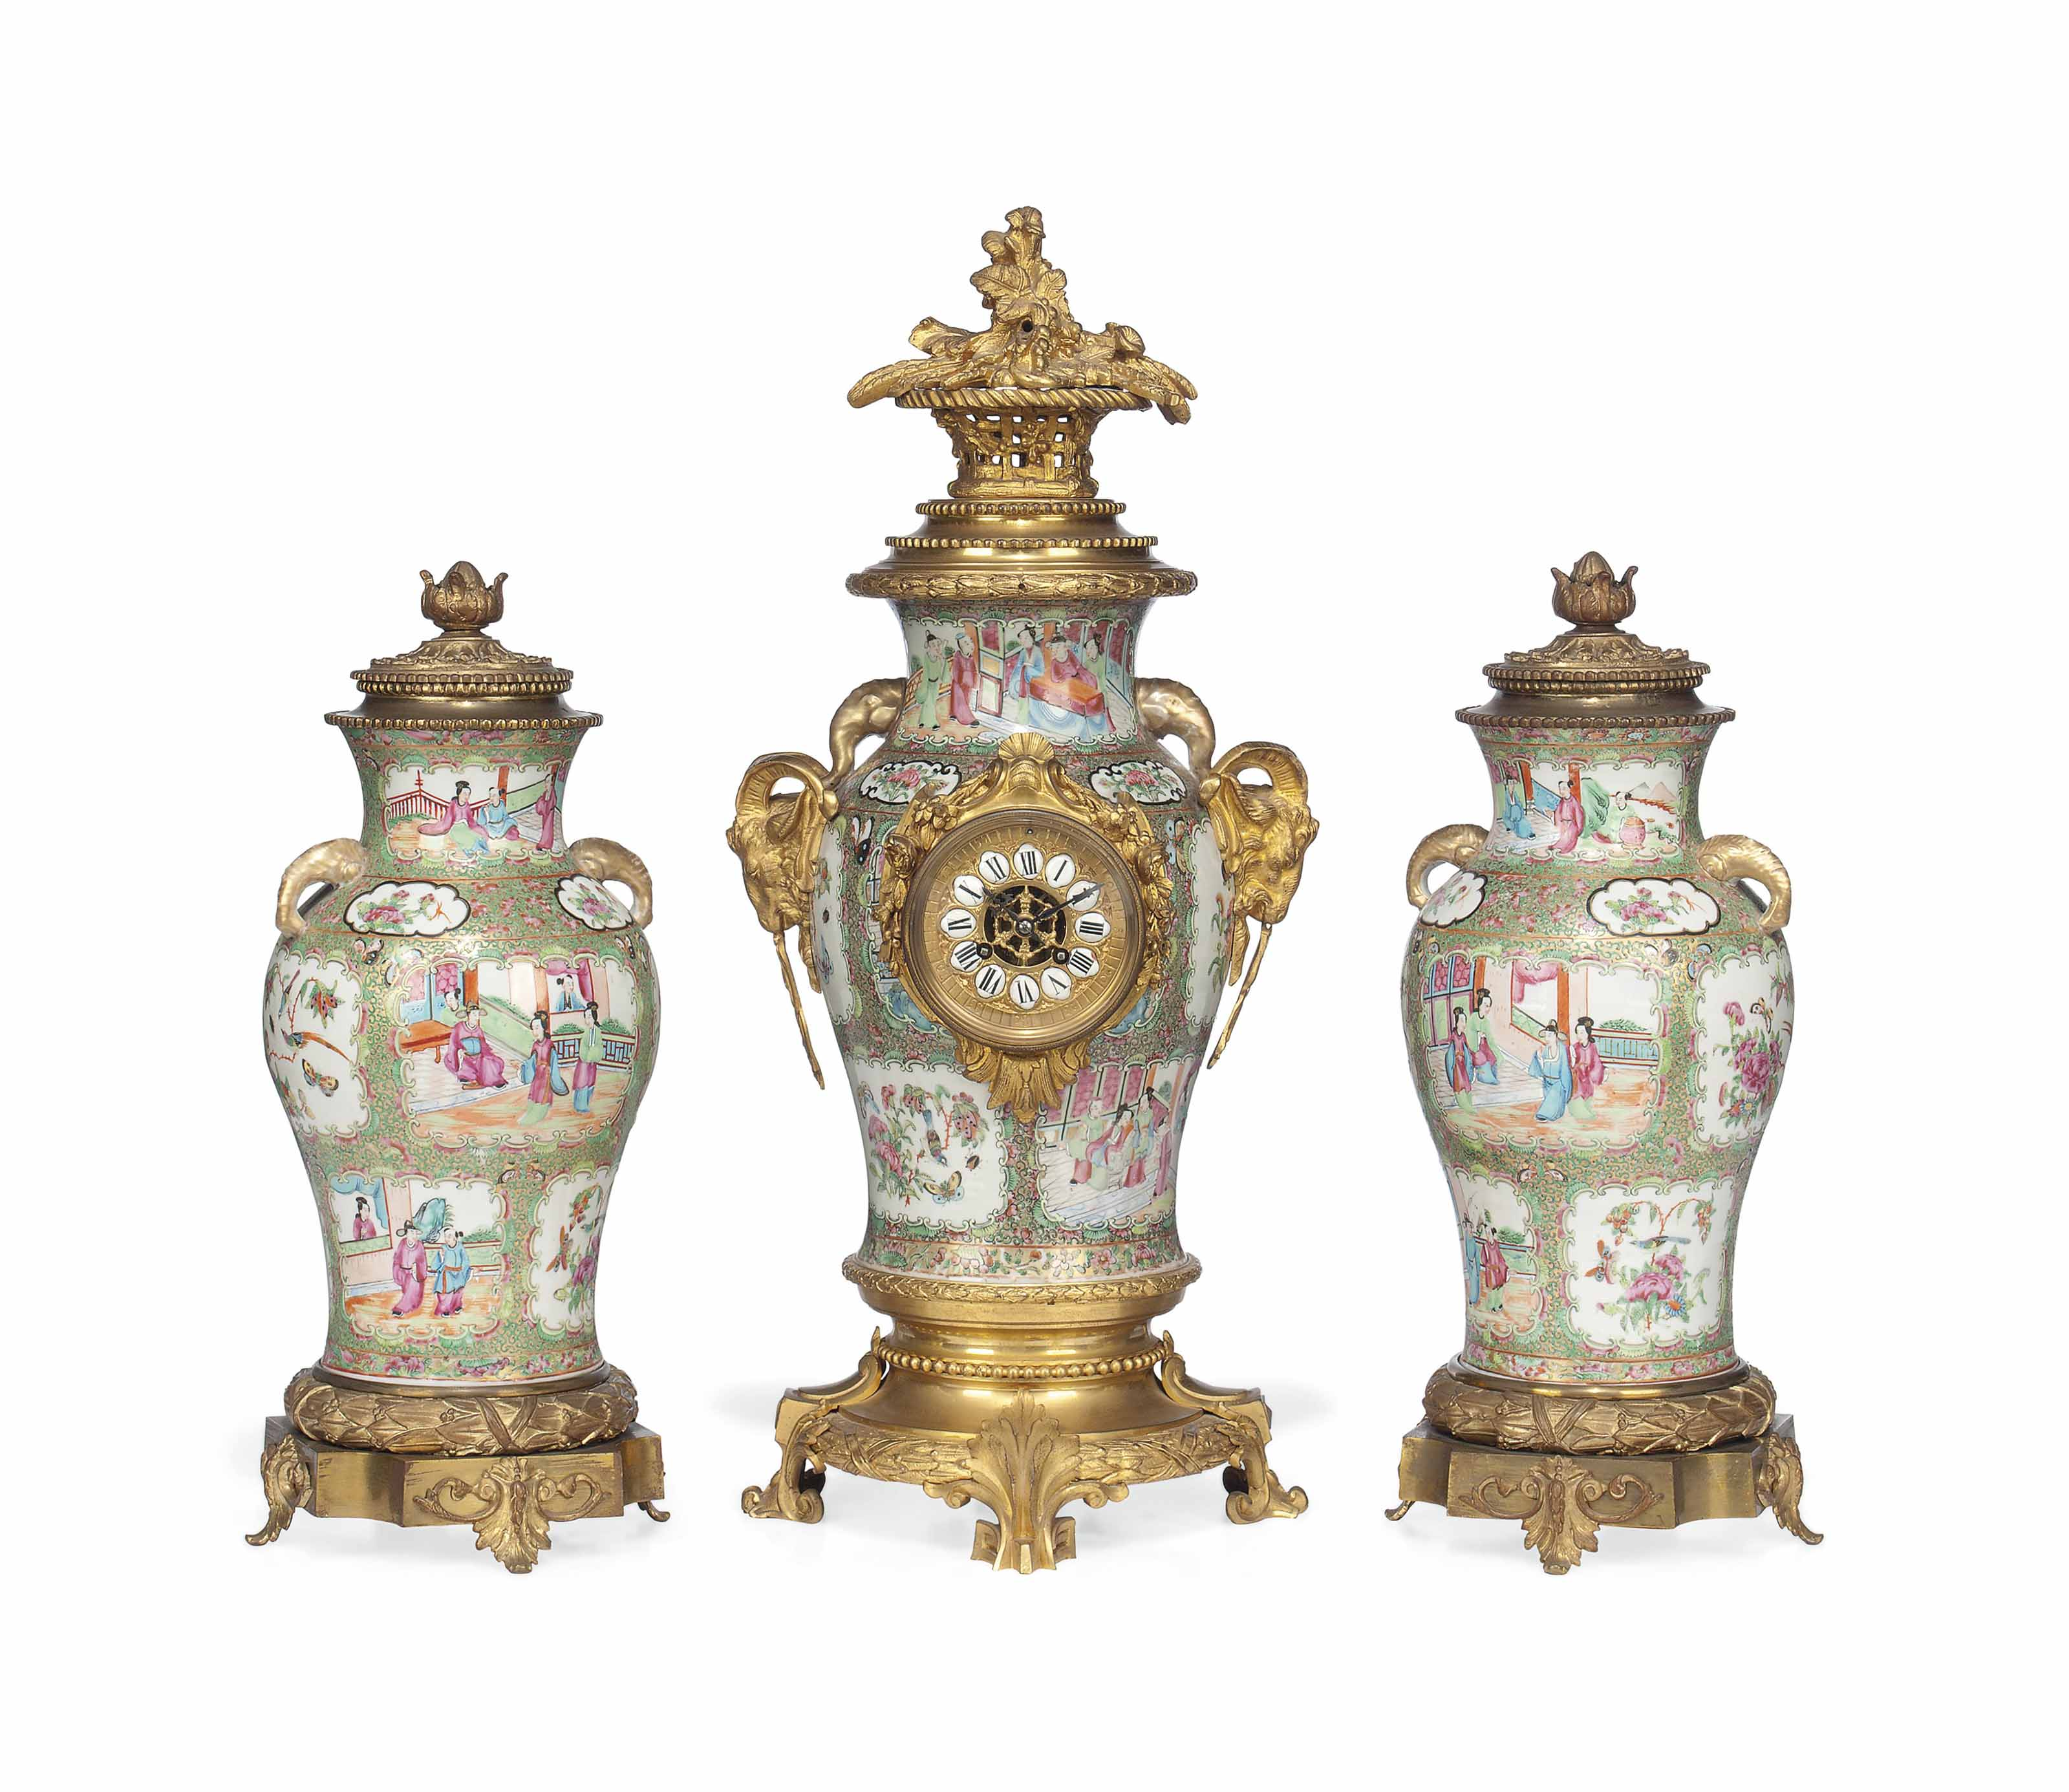 A MATCHED FRENCH ORMOLU-MOUNTED CANTON PORCELAIN STRIKING CLOCK GARNITURE